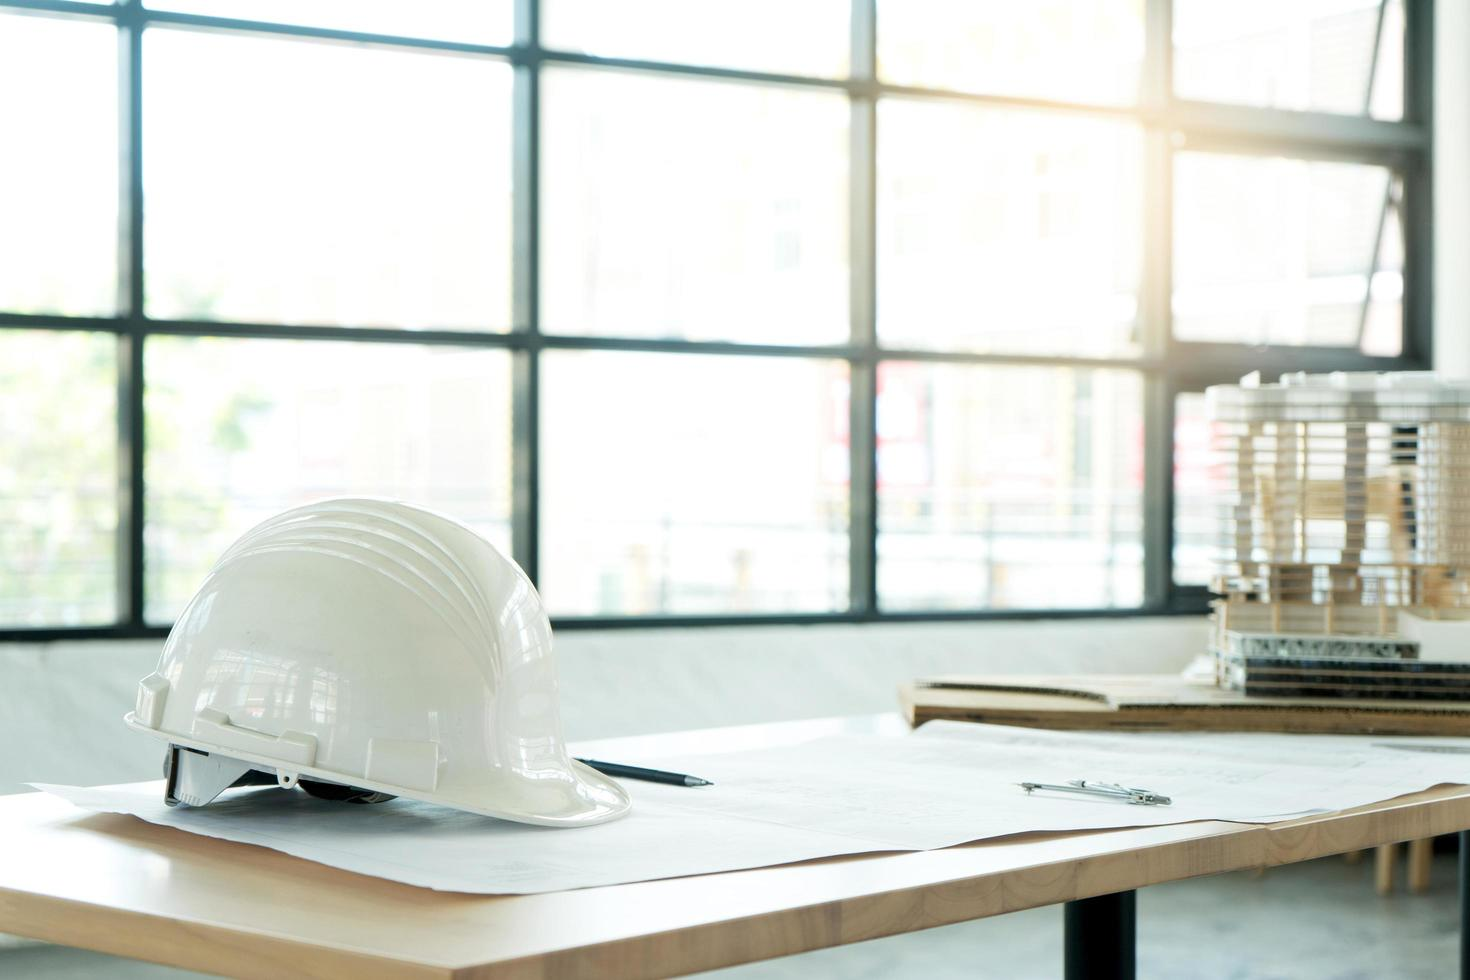 Hardhat and blueprint on table photo